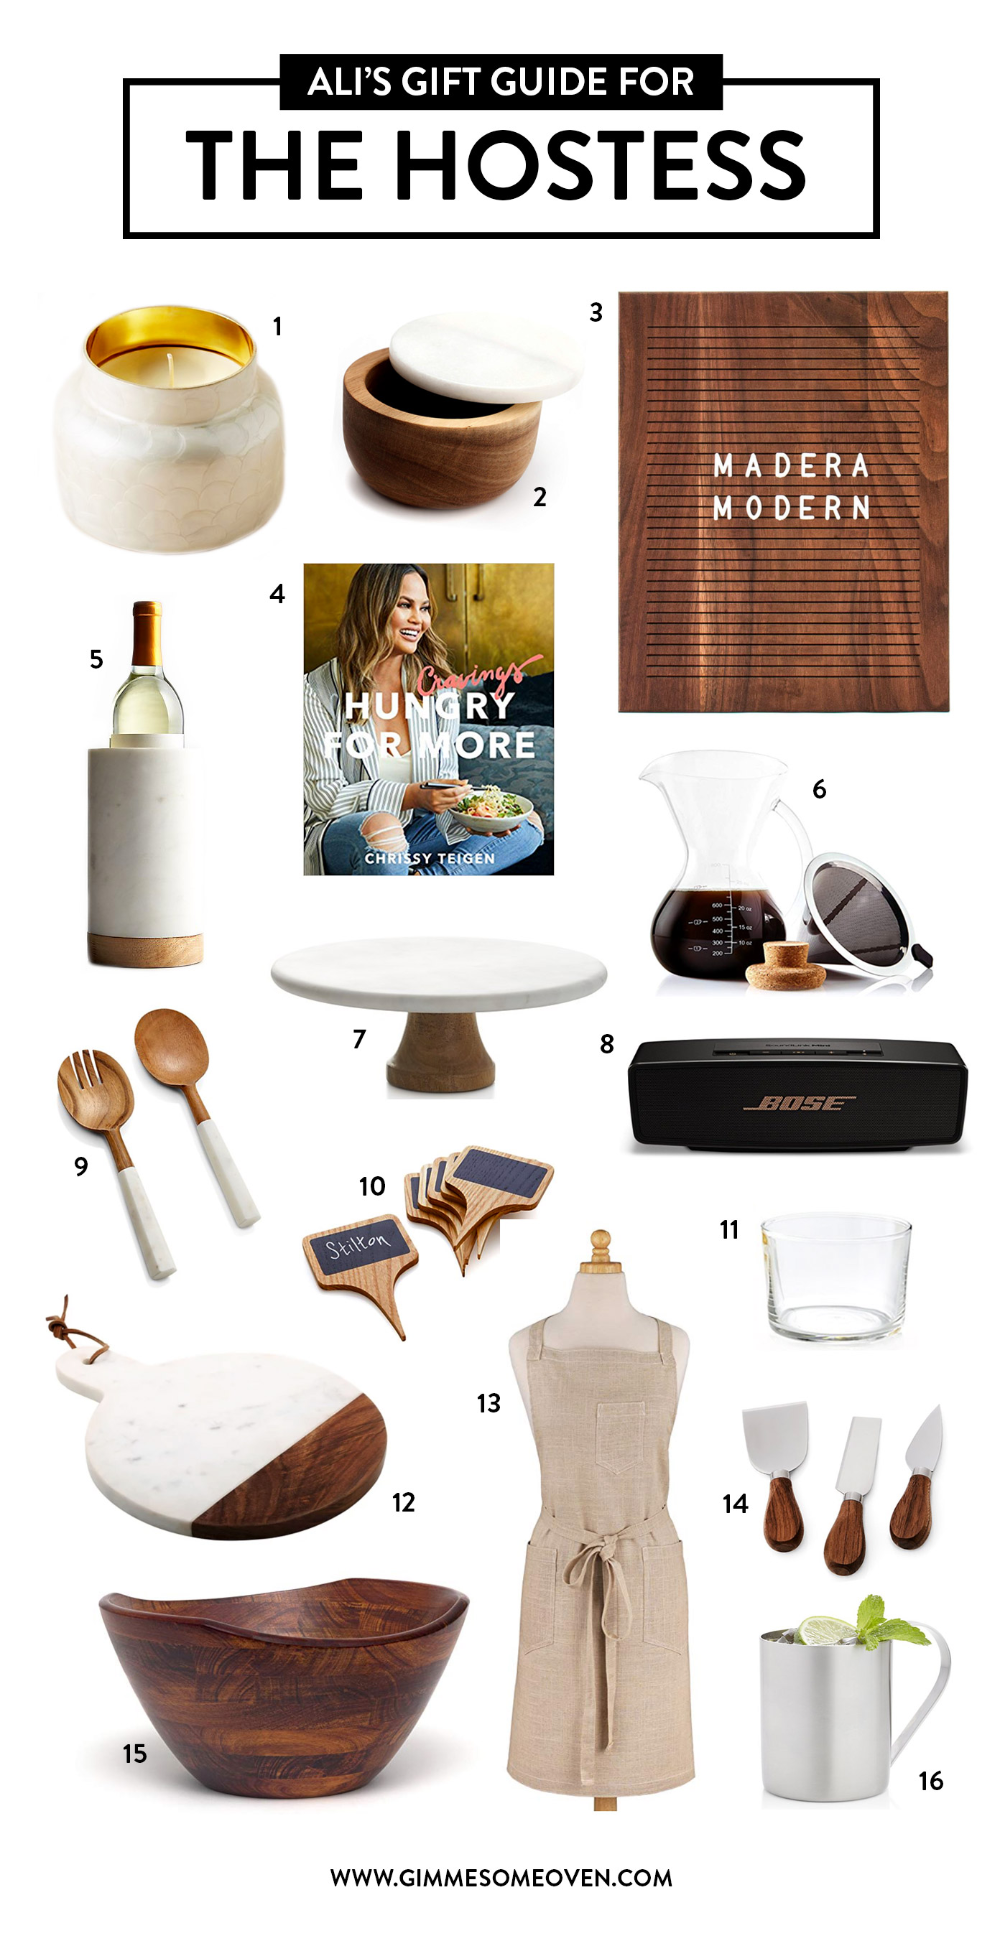 Holiday Gift Guide: HOSTESS EDITION | Lots of fun gift ideas for friends who love entertaining, hosting, cooking, baking, gathering people around the table. | gimmesomeoven.com #gift #guide #hostess #entertaining #home #decor #tabletop